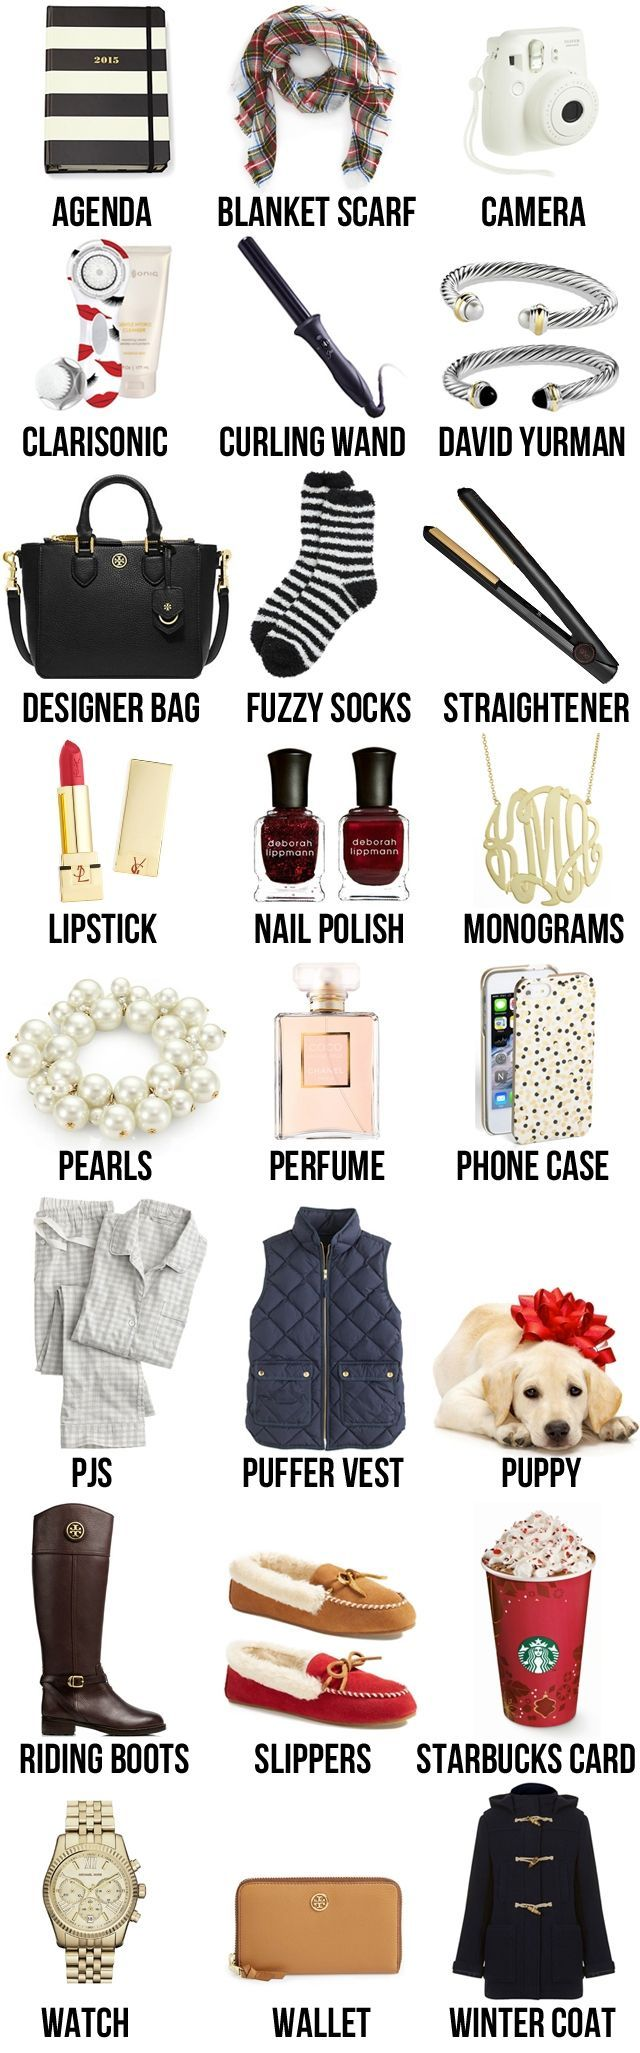 Southern Curls & Pearls: What You Should Ask For This Christmas ...